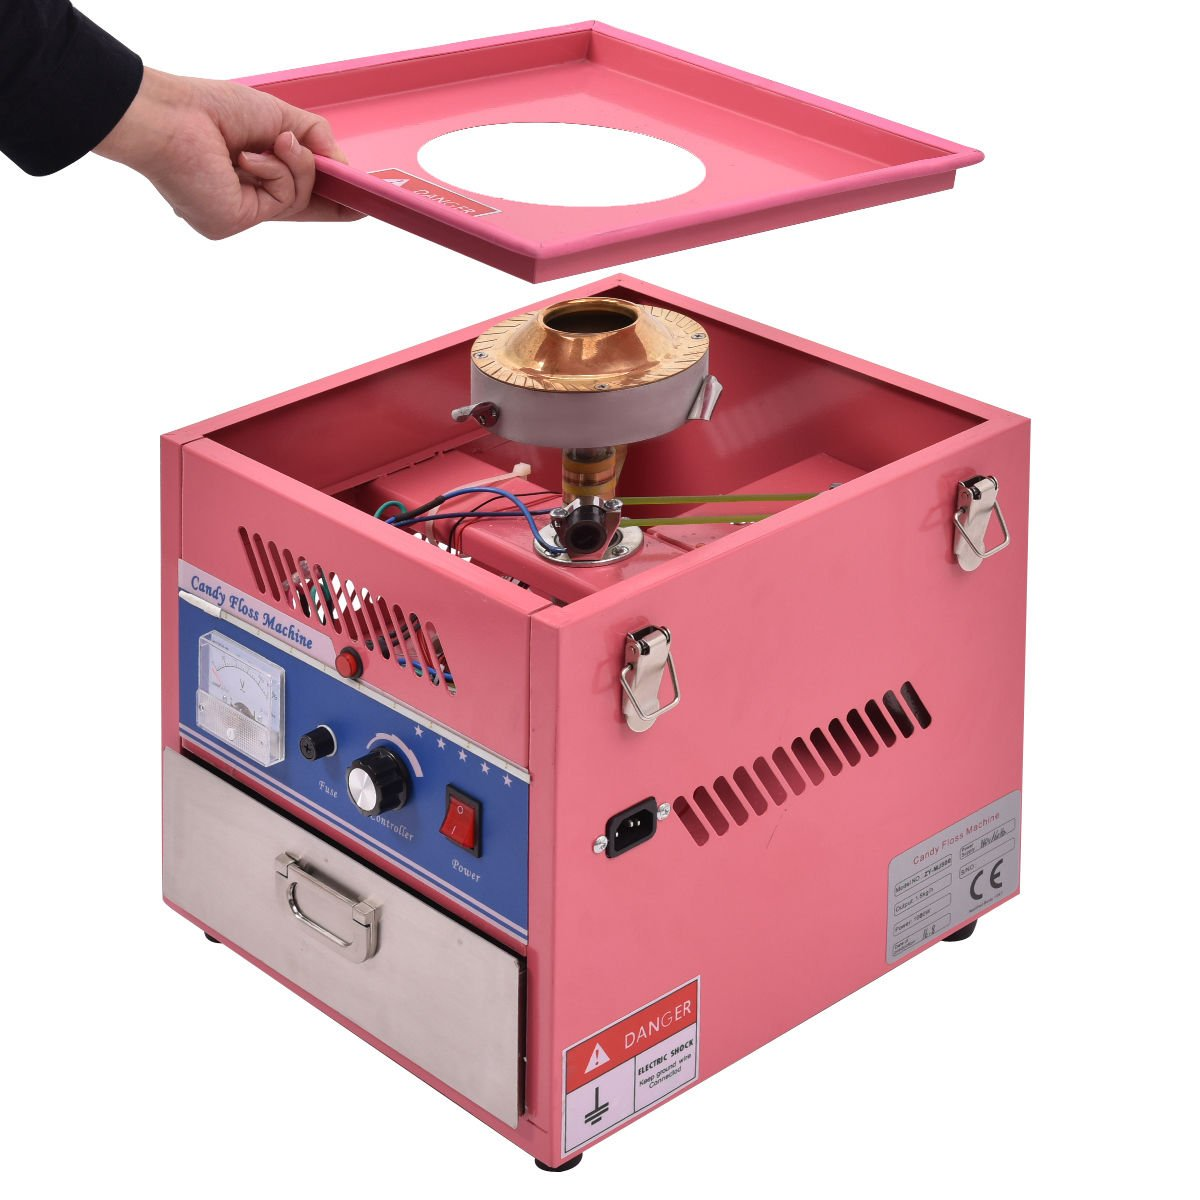 Giantex Electric Cotton Candy Machine Floss Maker Commercial Carnival Party Pink by Giantex (Image #5)